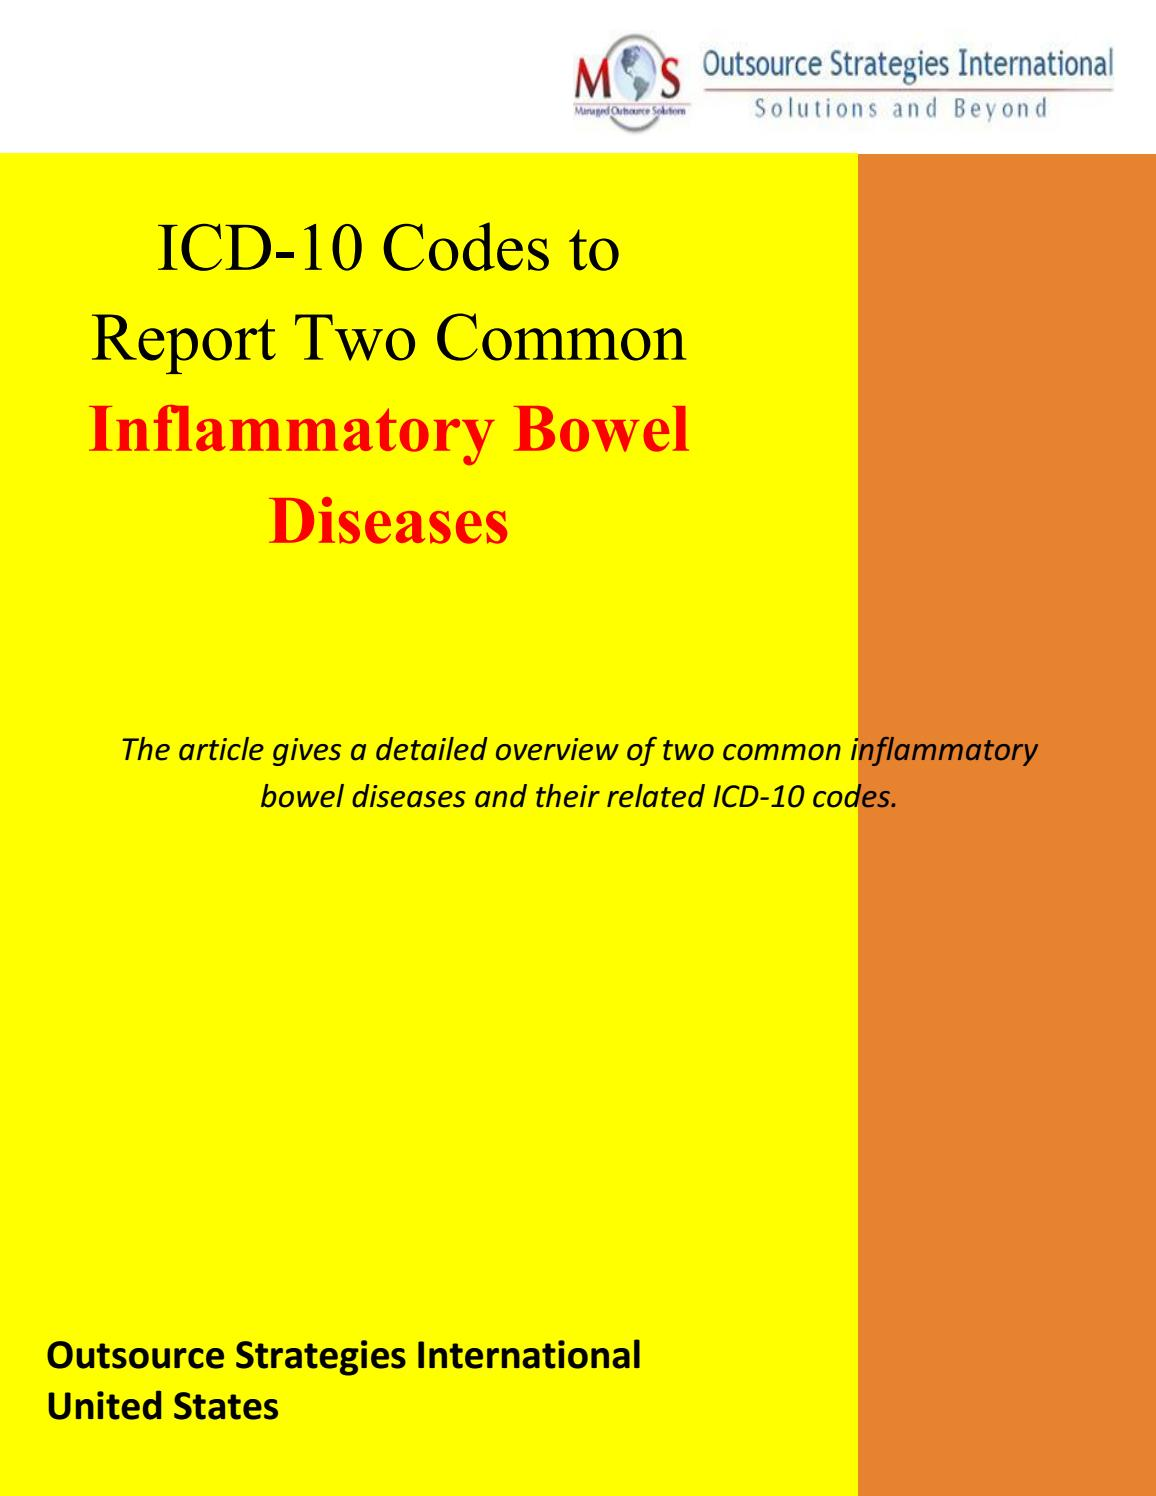 Rectal cancer icd 10 code - Icd 10 code for papilloma rll - 4vip.ro